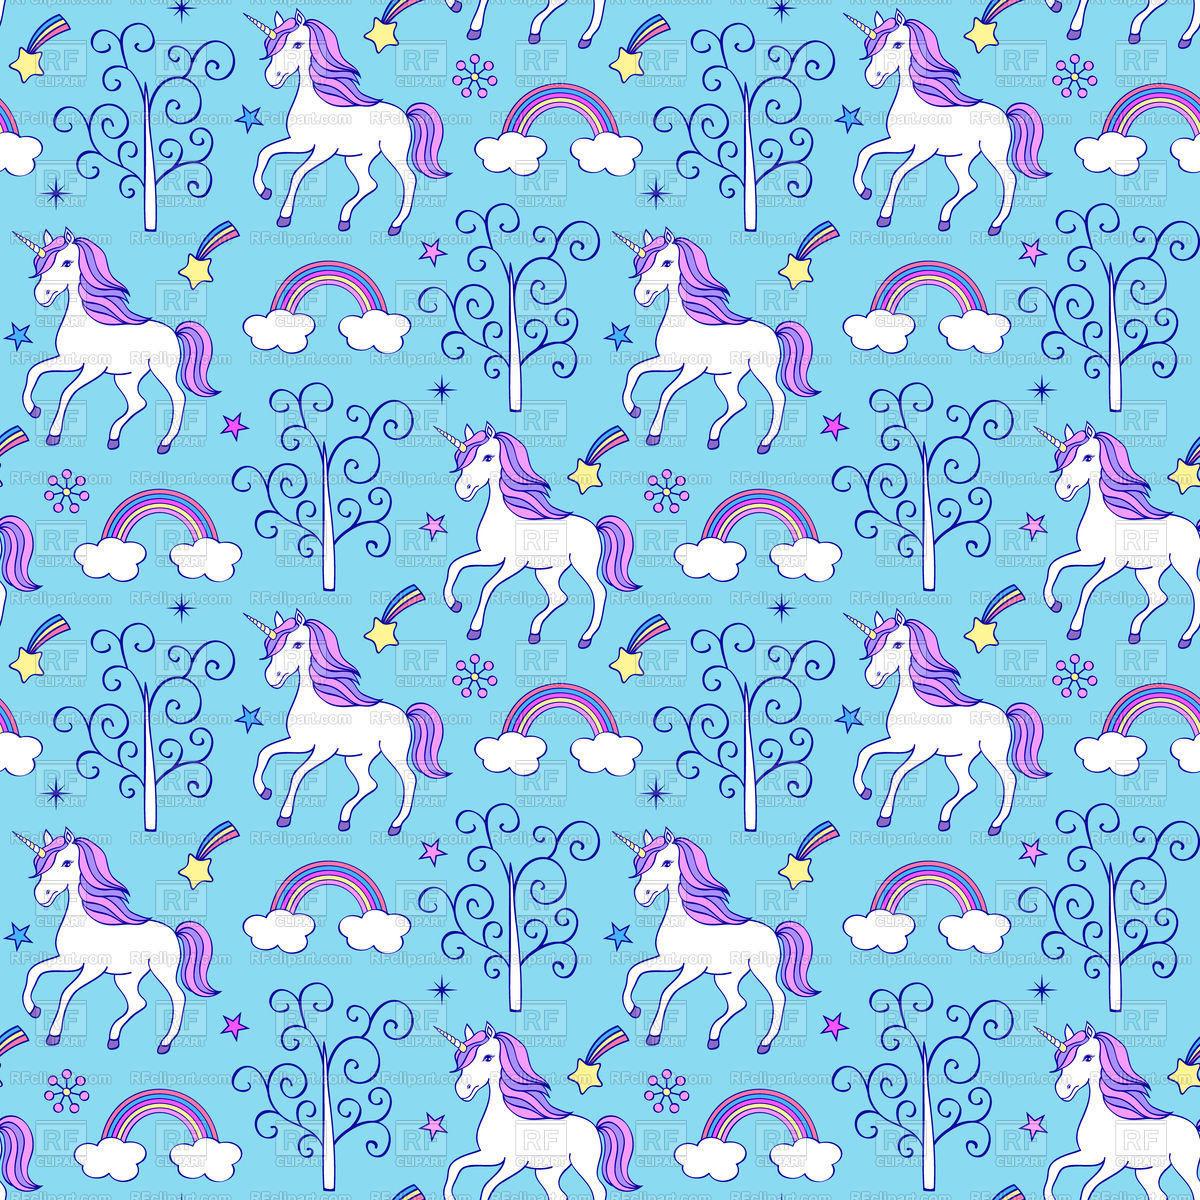 Seamless pattern with unicorns on blue background Vector Image of 1200x1200